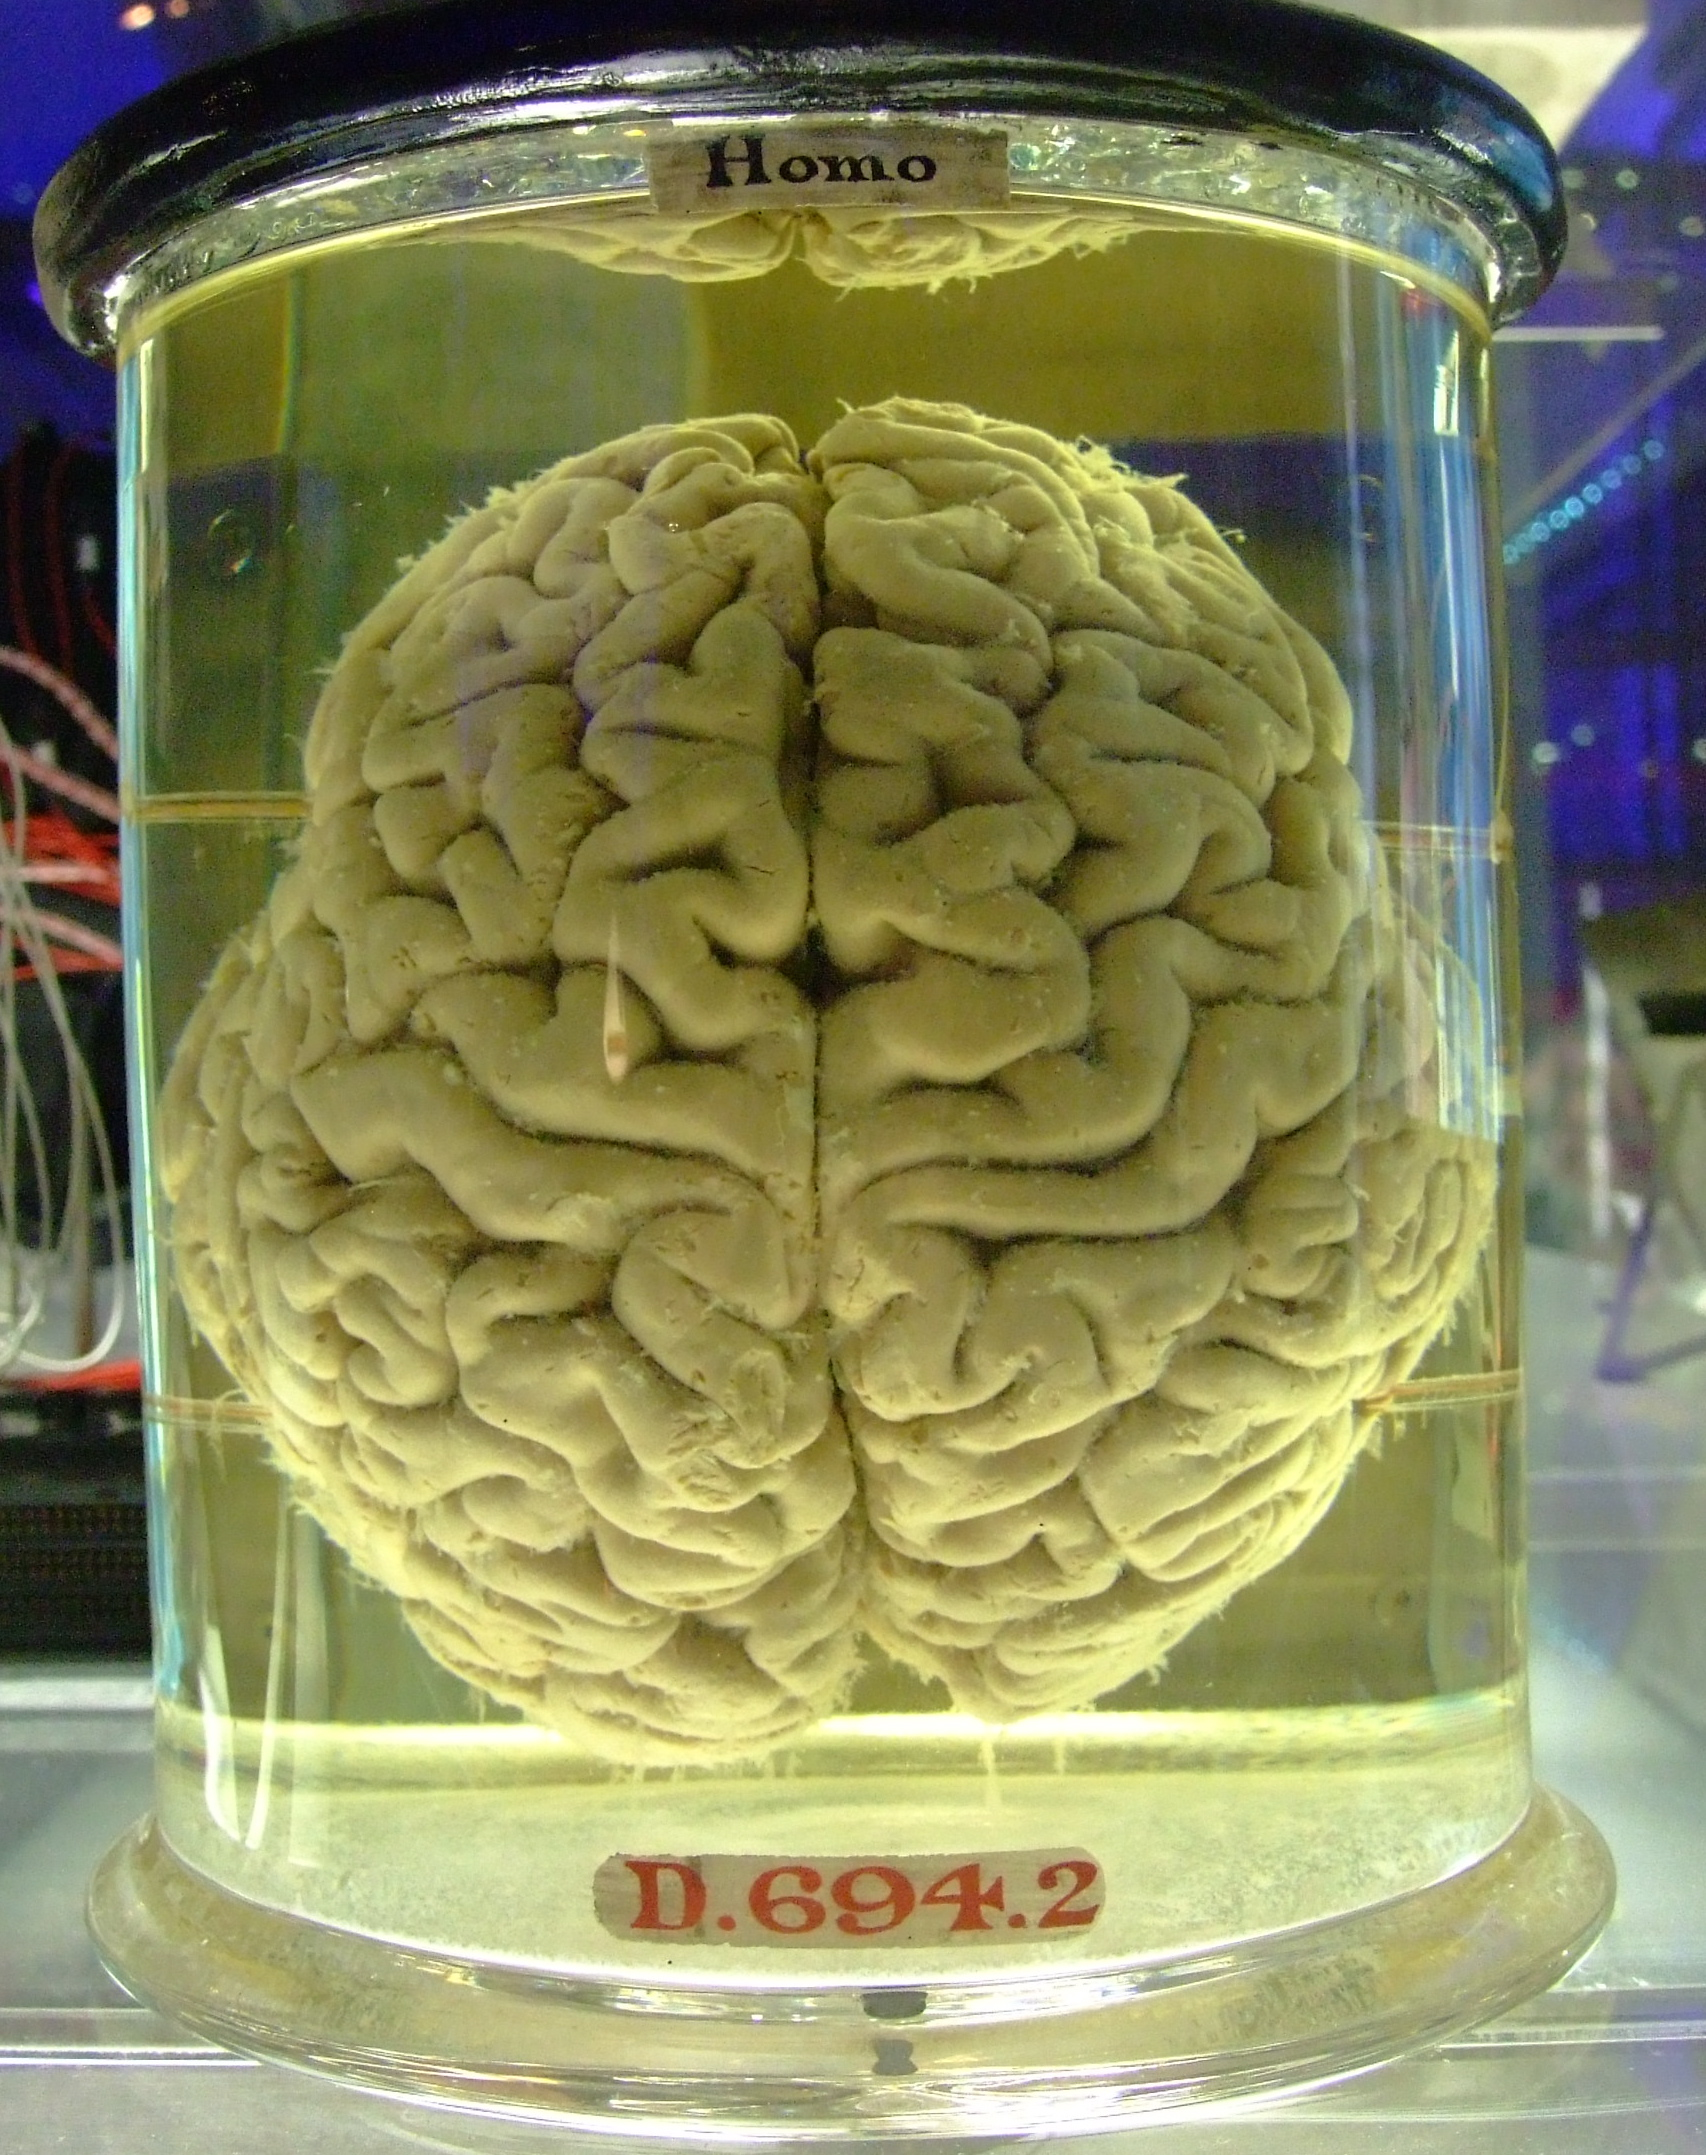 BRAINS-IN-VATS